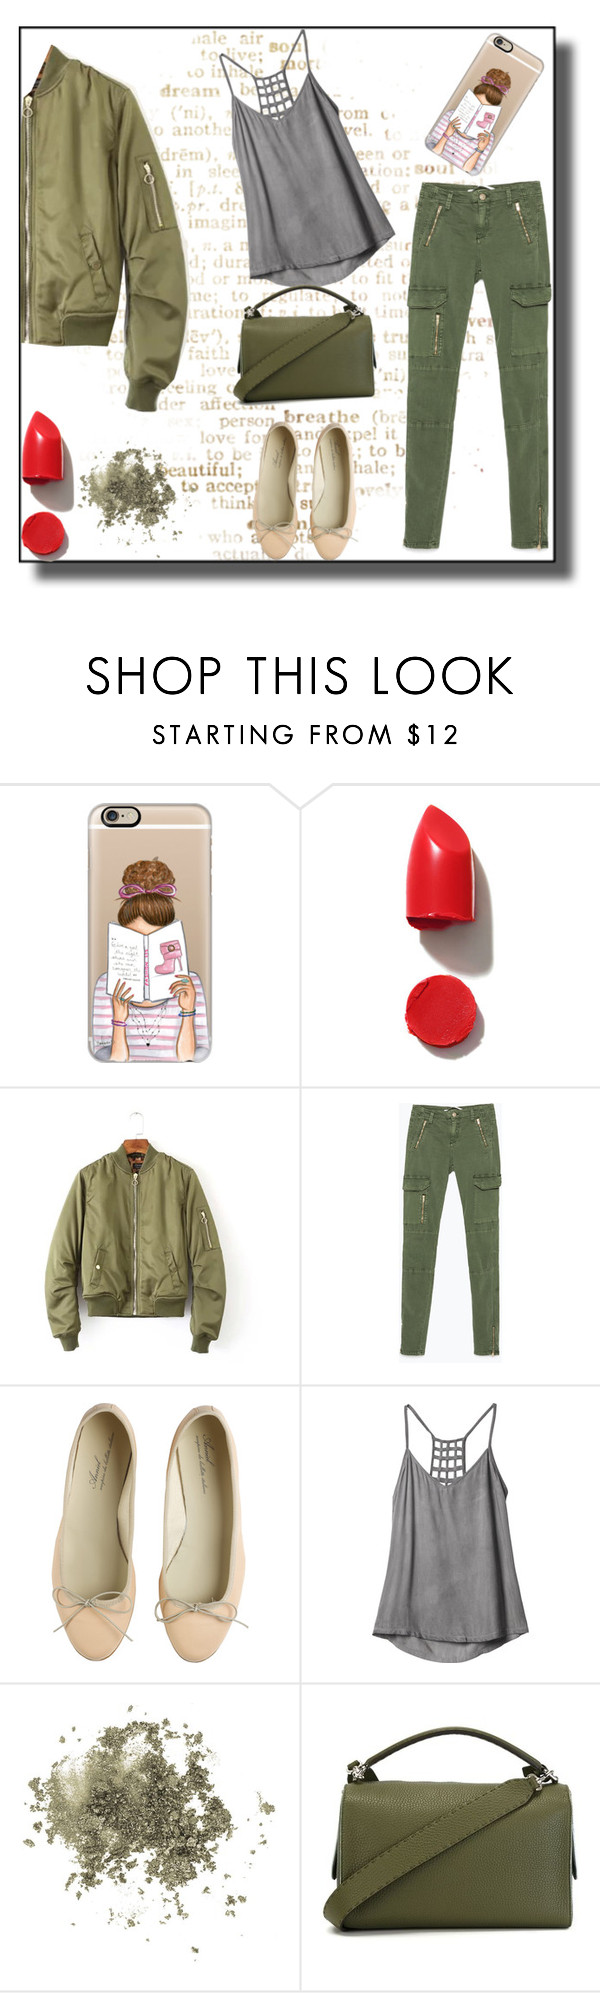 """""""Style weekend"""" by elarmariodelcamaleon ❤ liked on Polyvore featuring Casetify, NARS Cosmetics, Zara, Anniel, RVCA, Topshop and Fendi"""